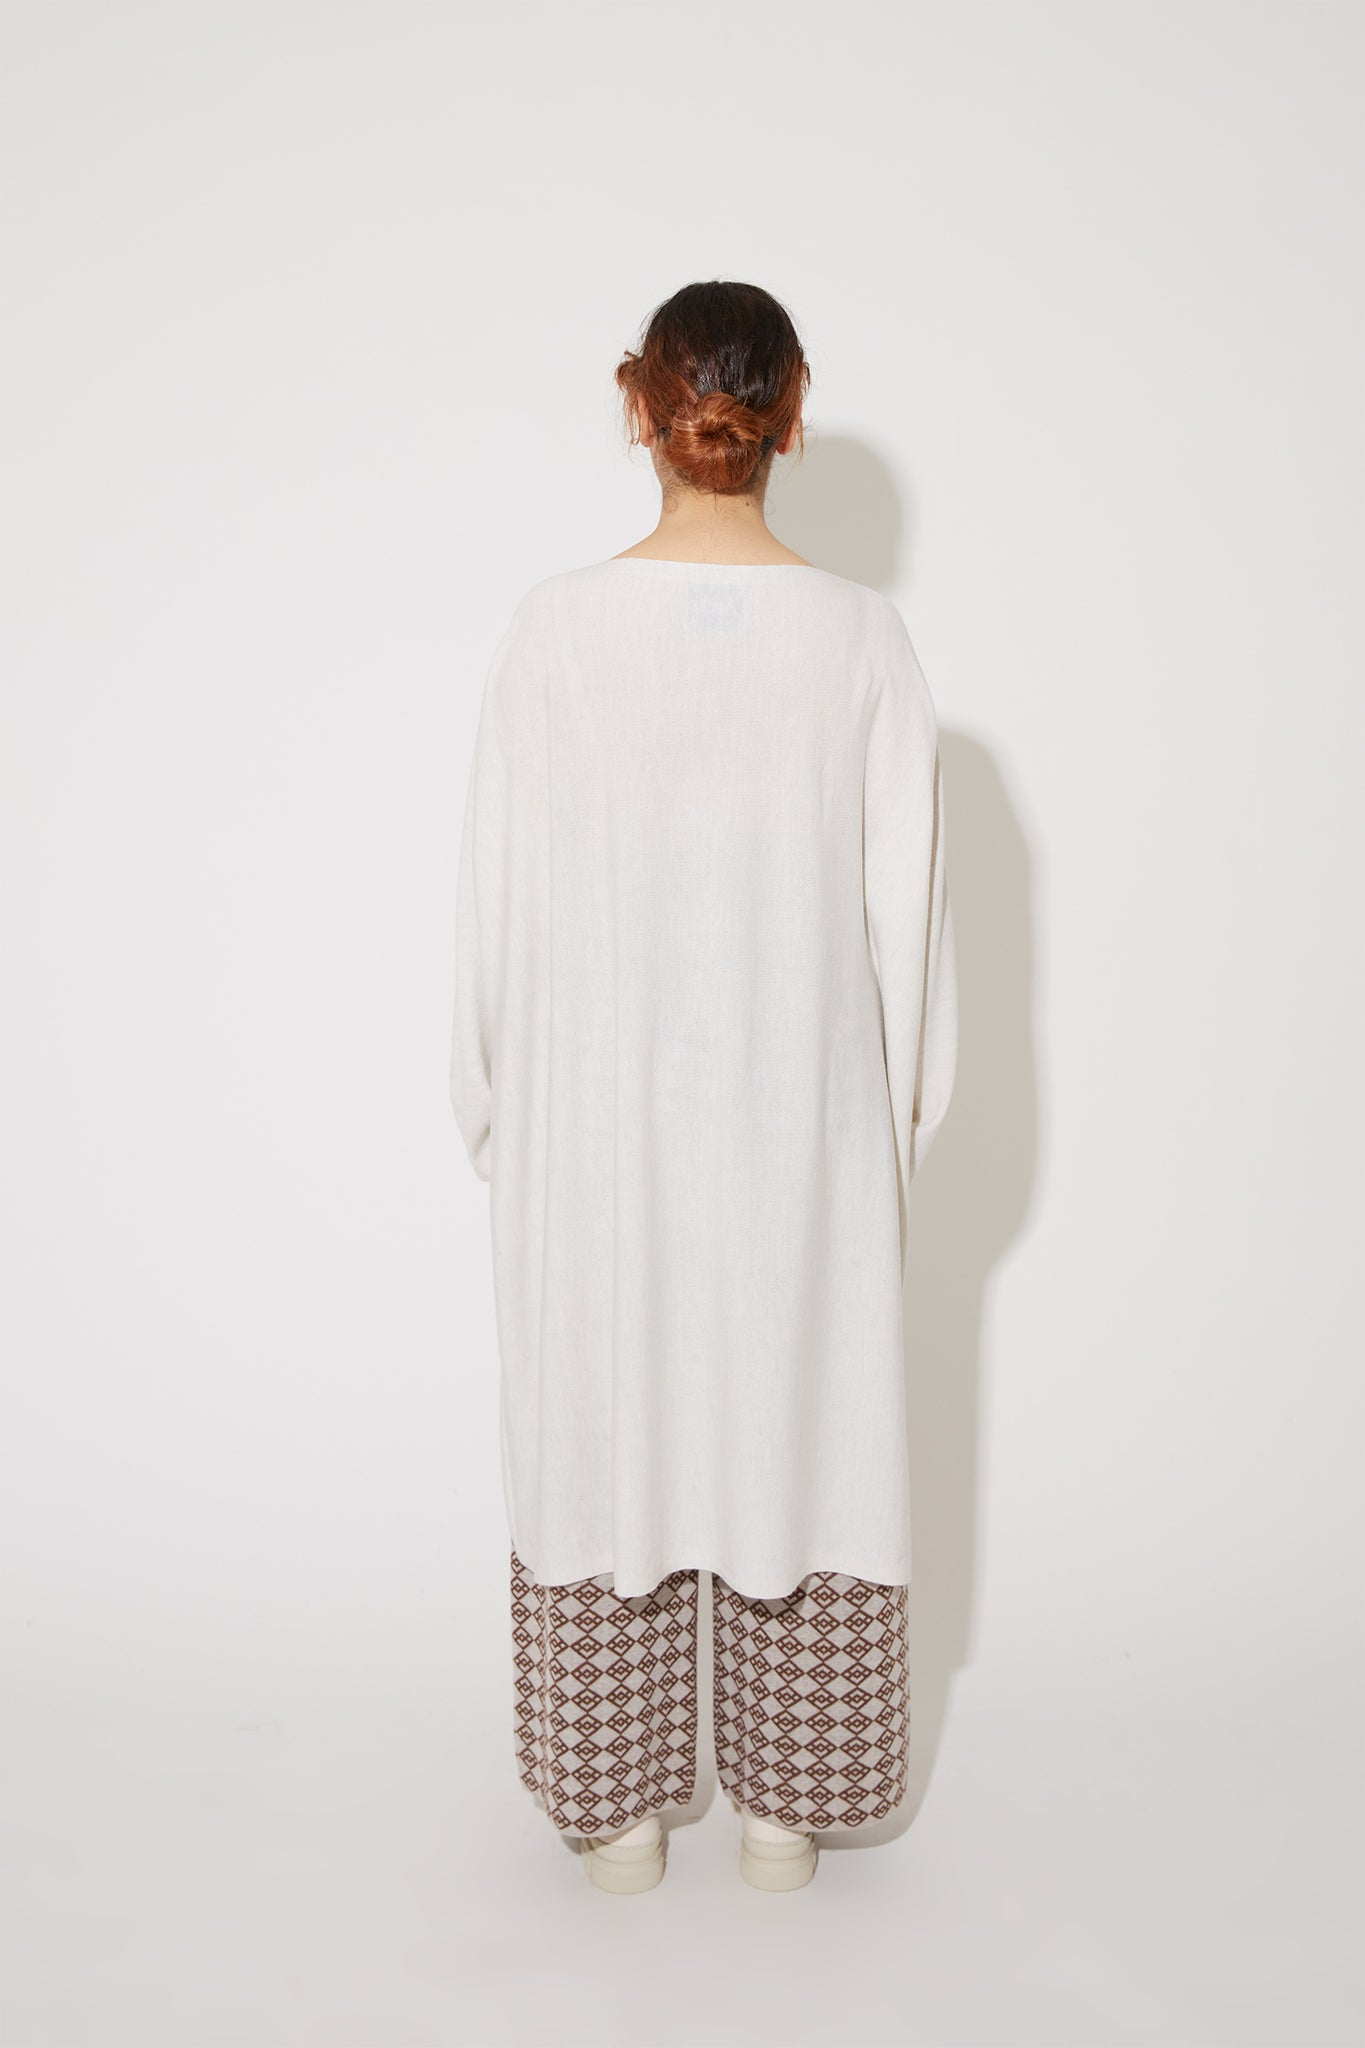 Eelia merino dress in ivory white